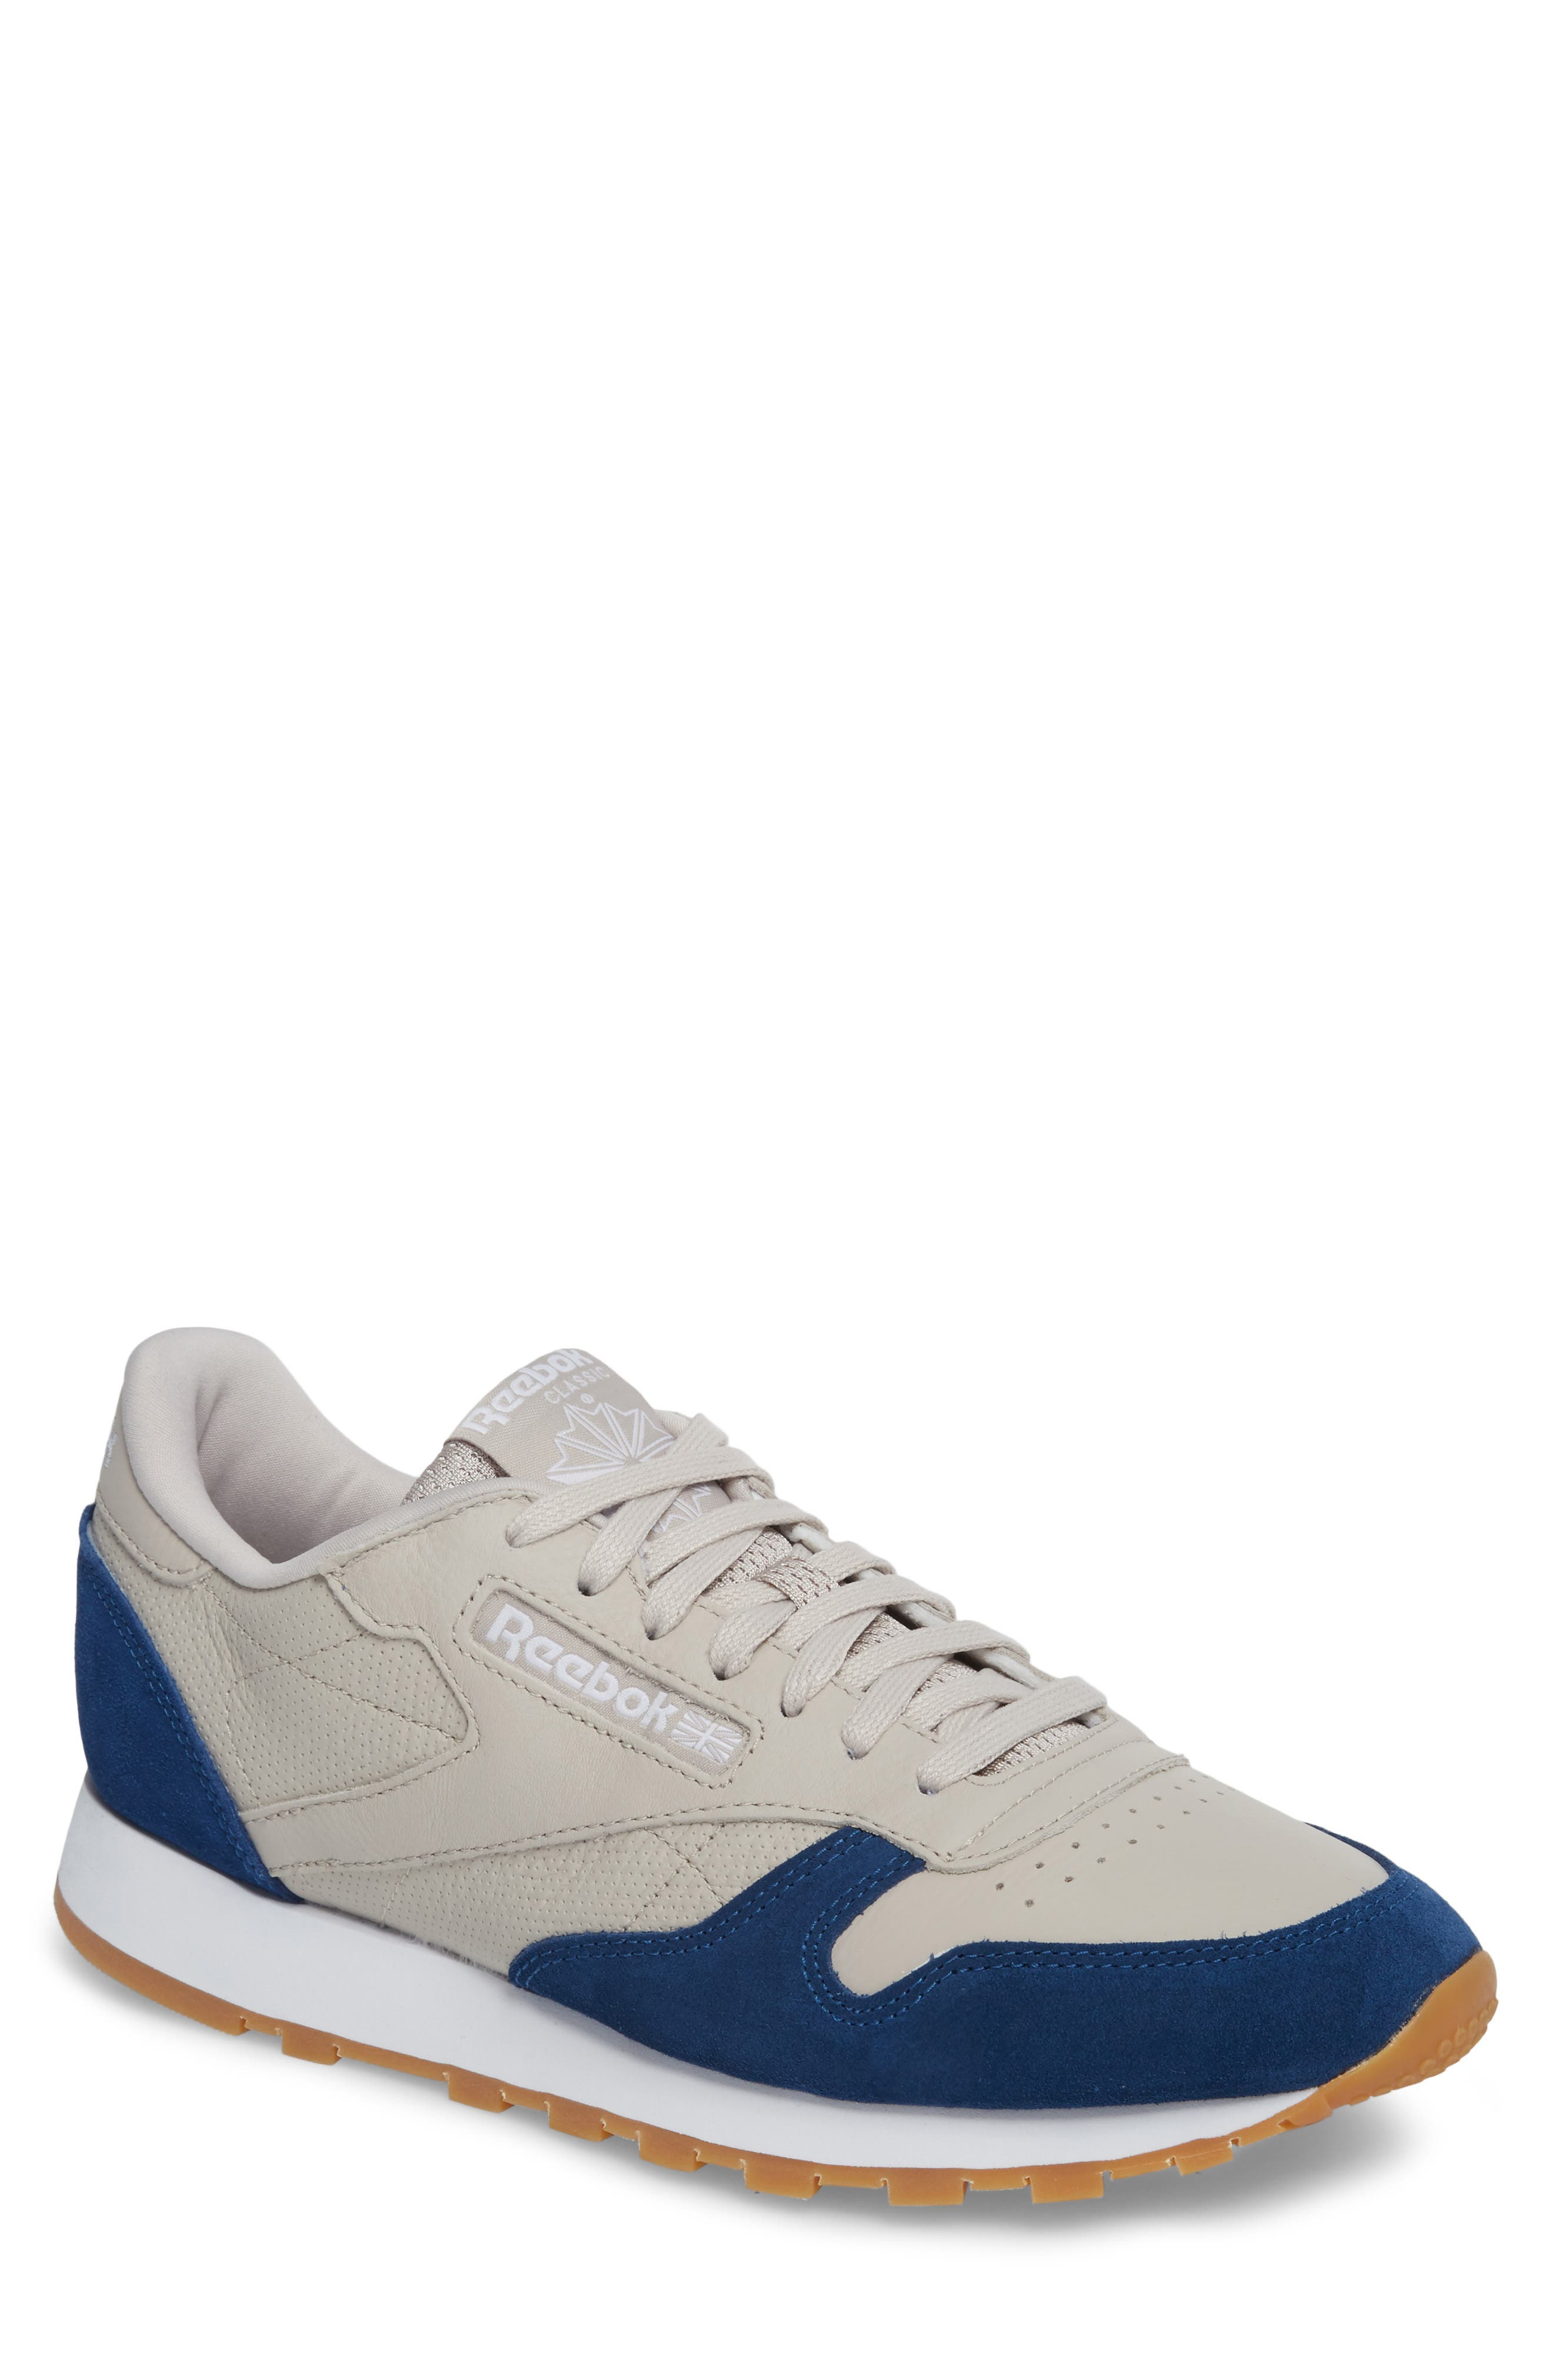 Classic Leather GI Sneaker,                         Main,                         color, Sand Stone/ Washed Blue/ White